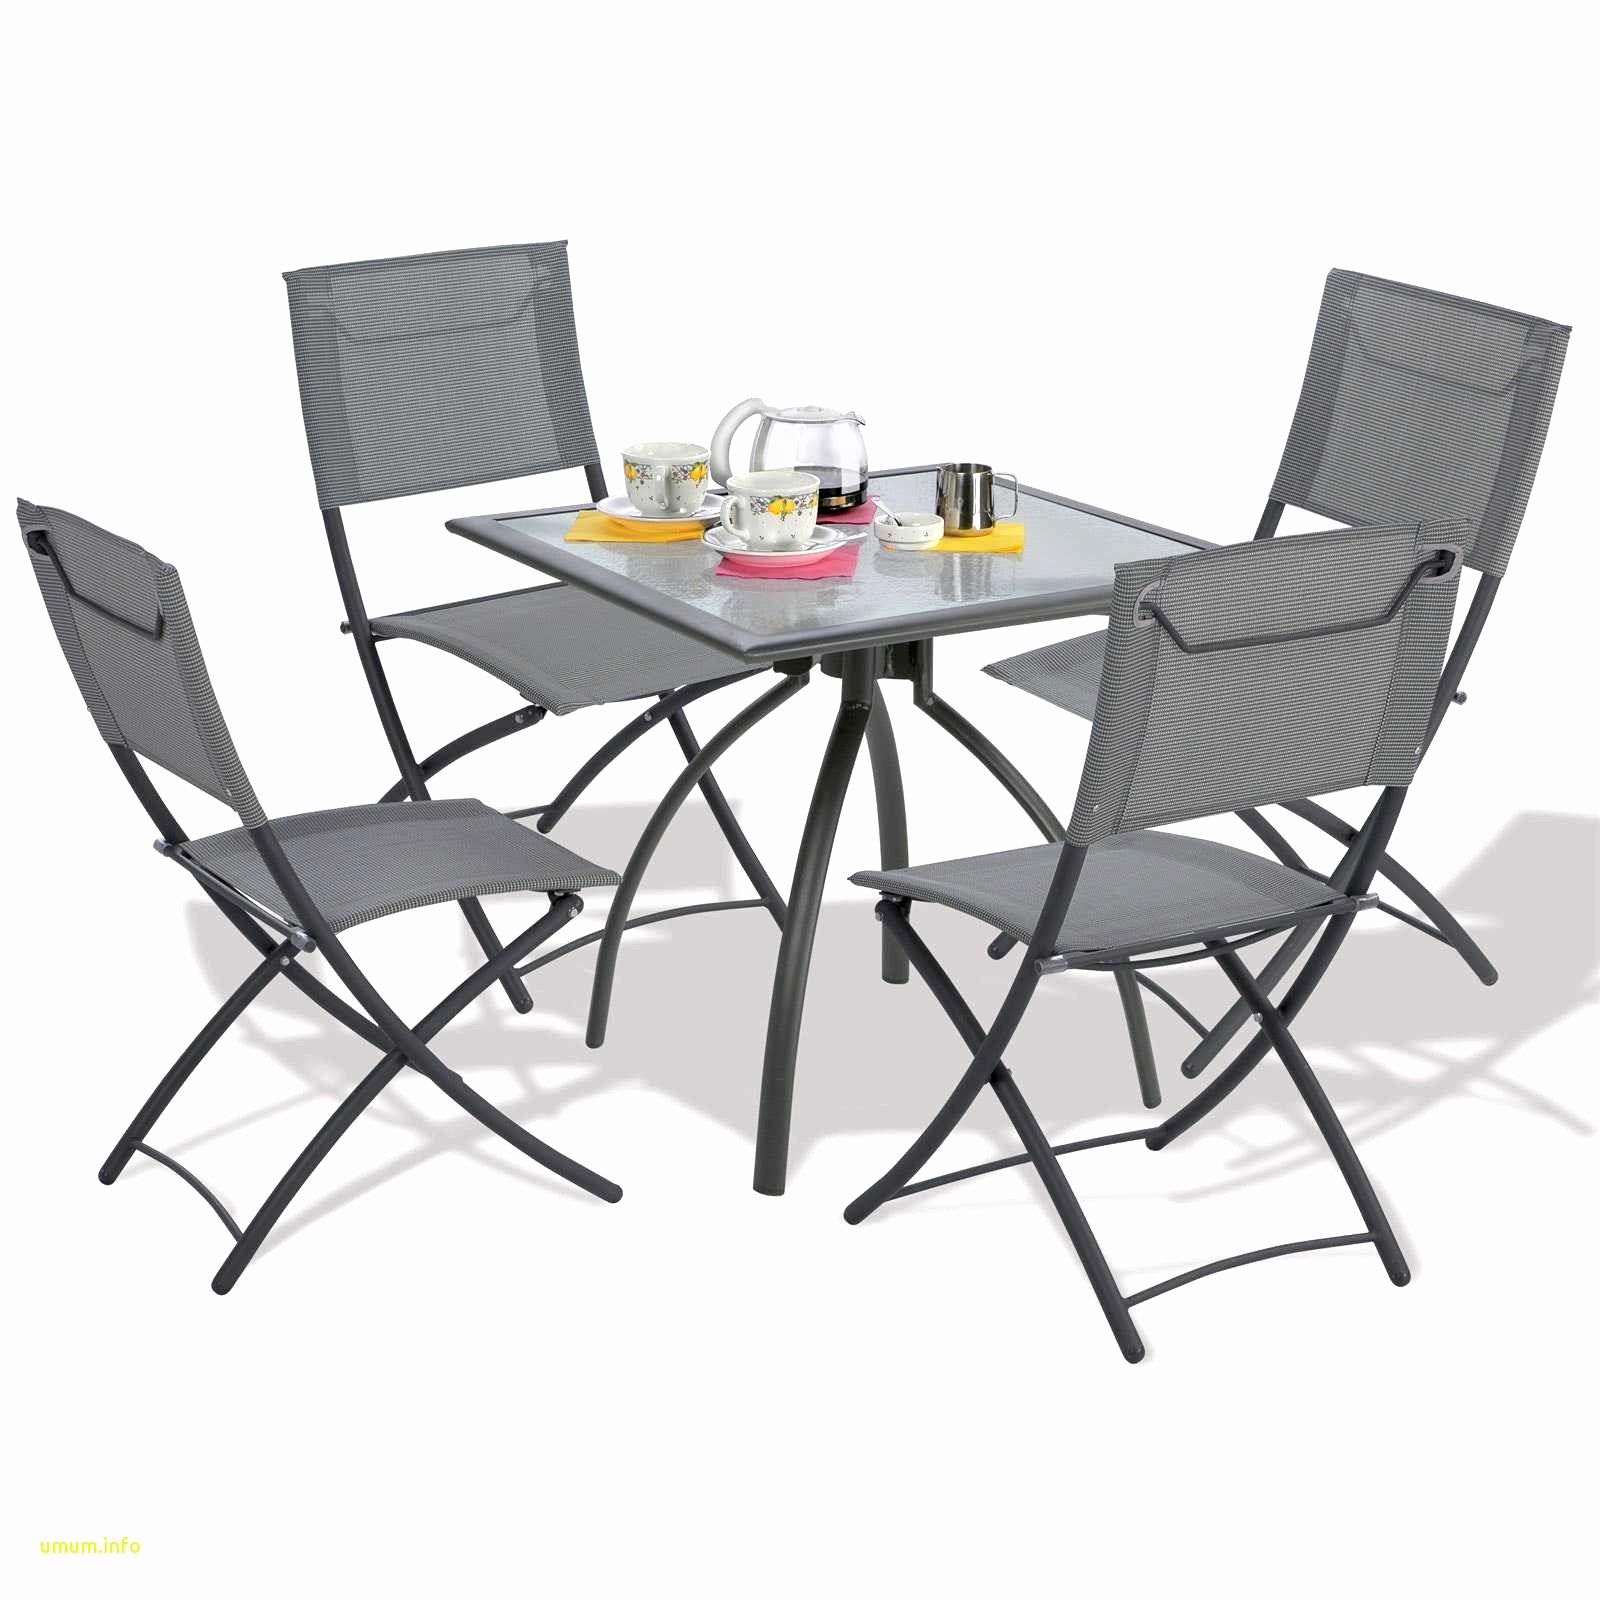 table terrasse restaurant occasion genial tables et chaises de restaurant d occasion tables et chaises de of table terrasse restaurant occasion 1